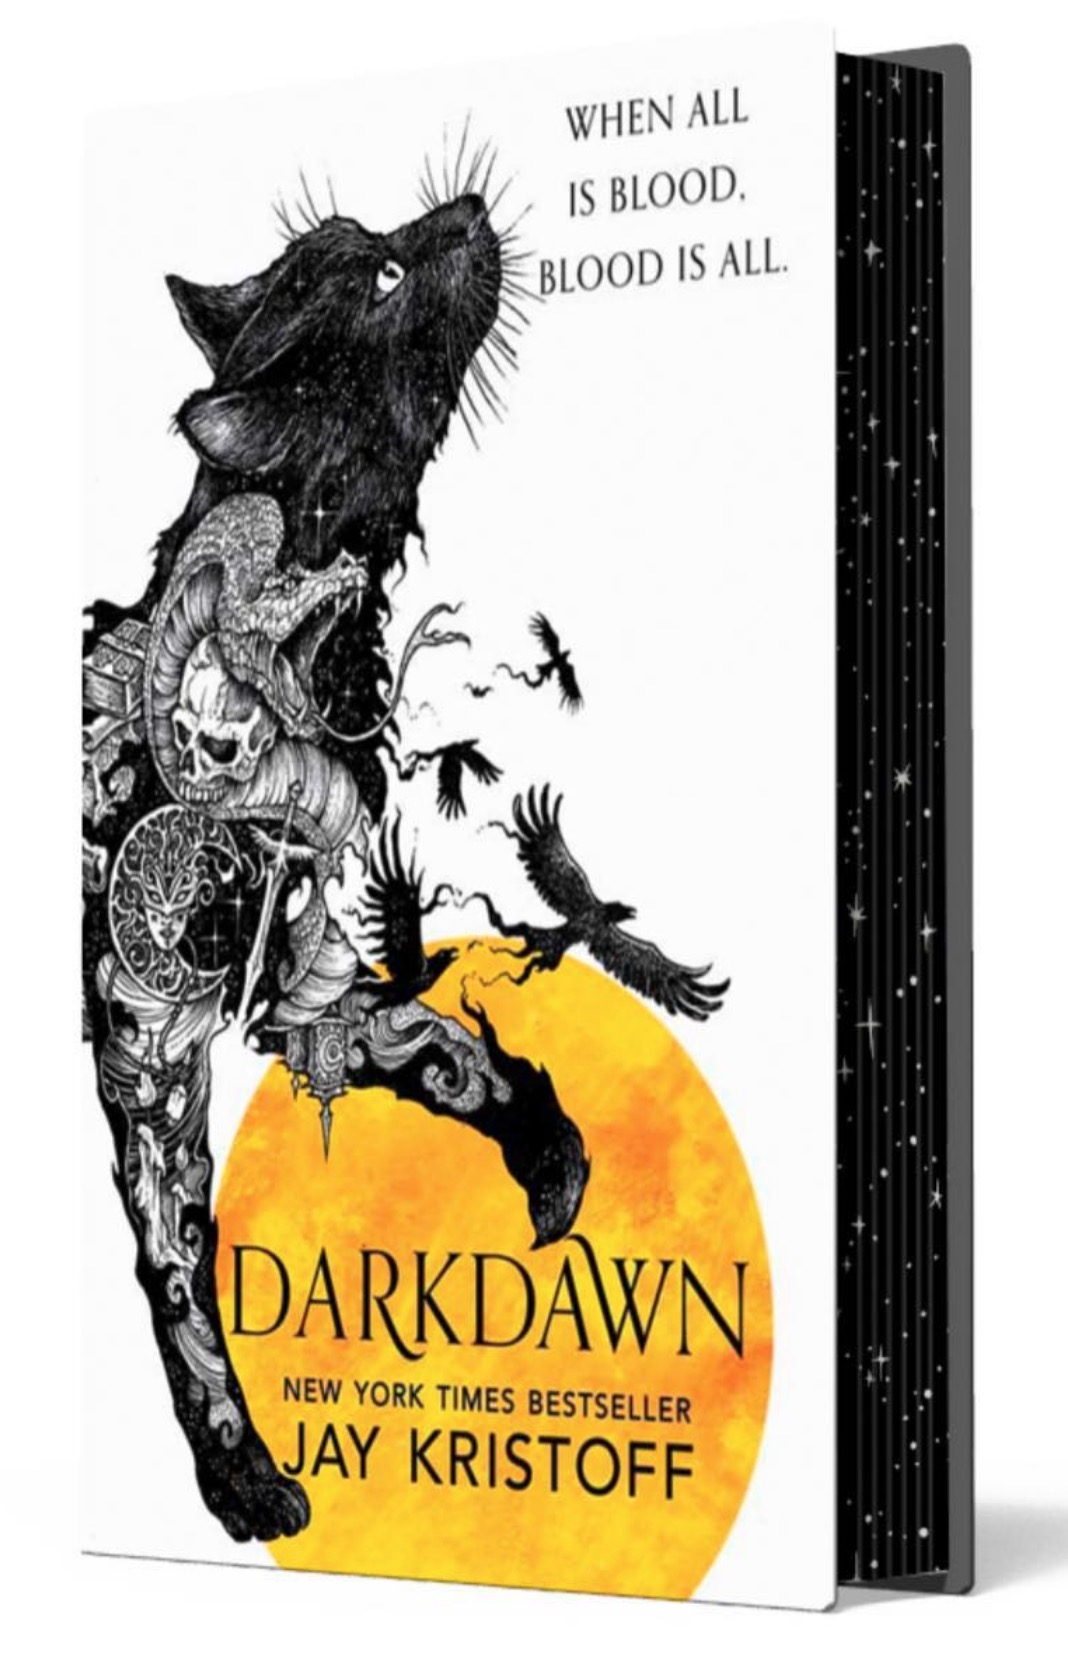 Jay Kristoff Darkdawn sprayed edges